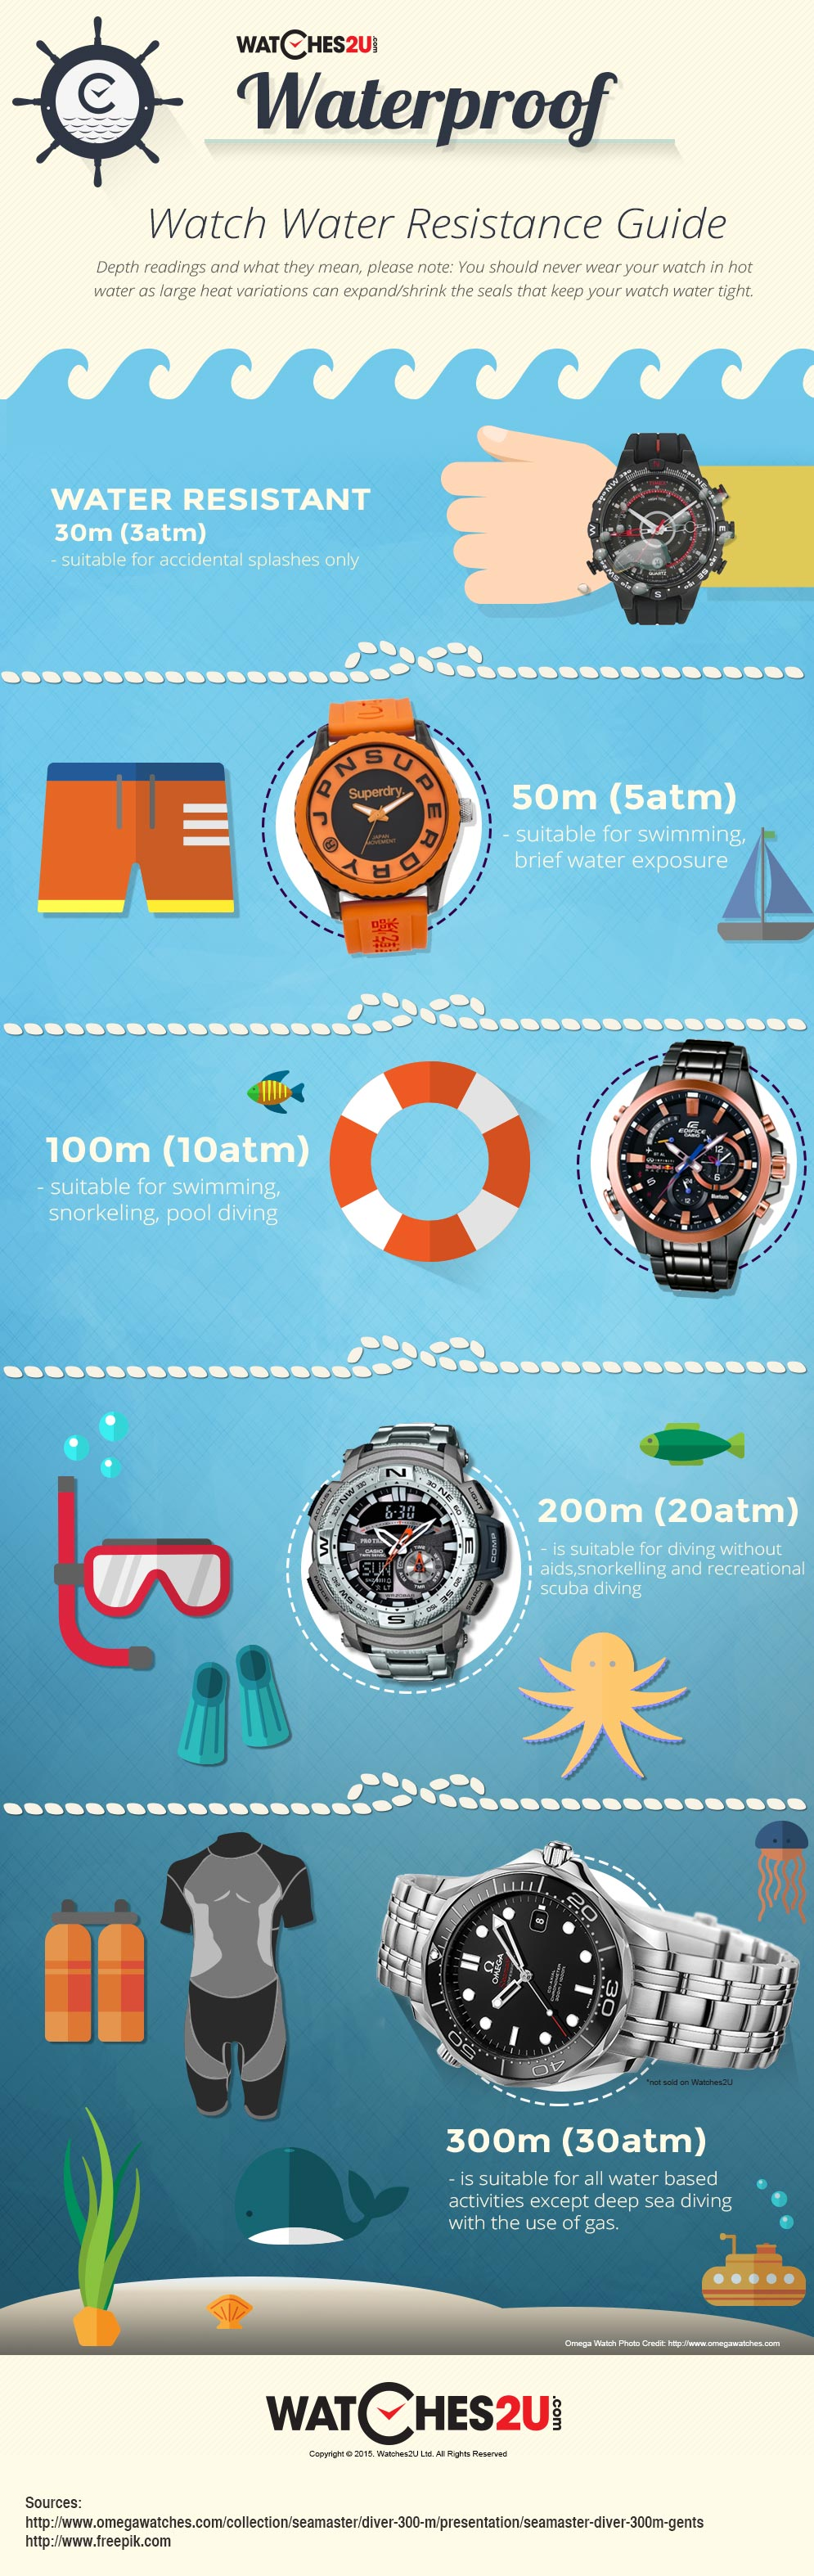 how to maximise water resistance in a watch